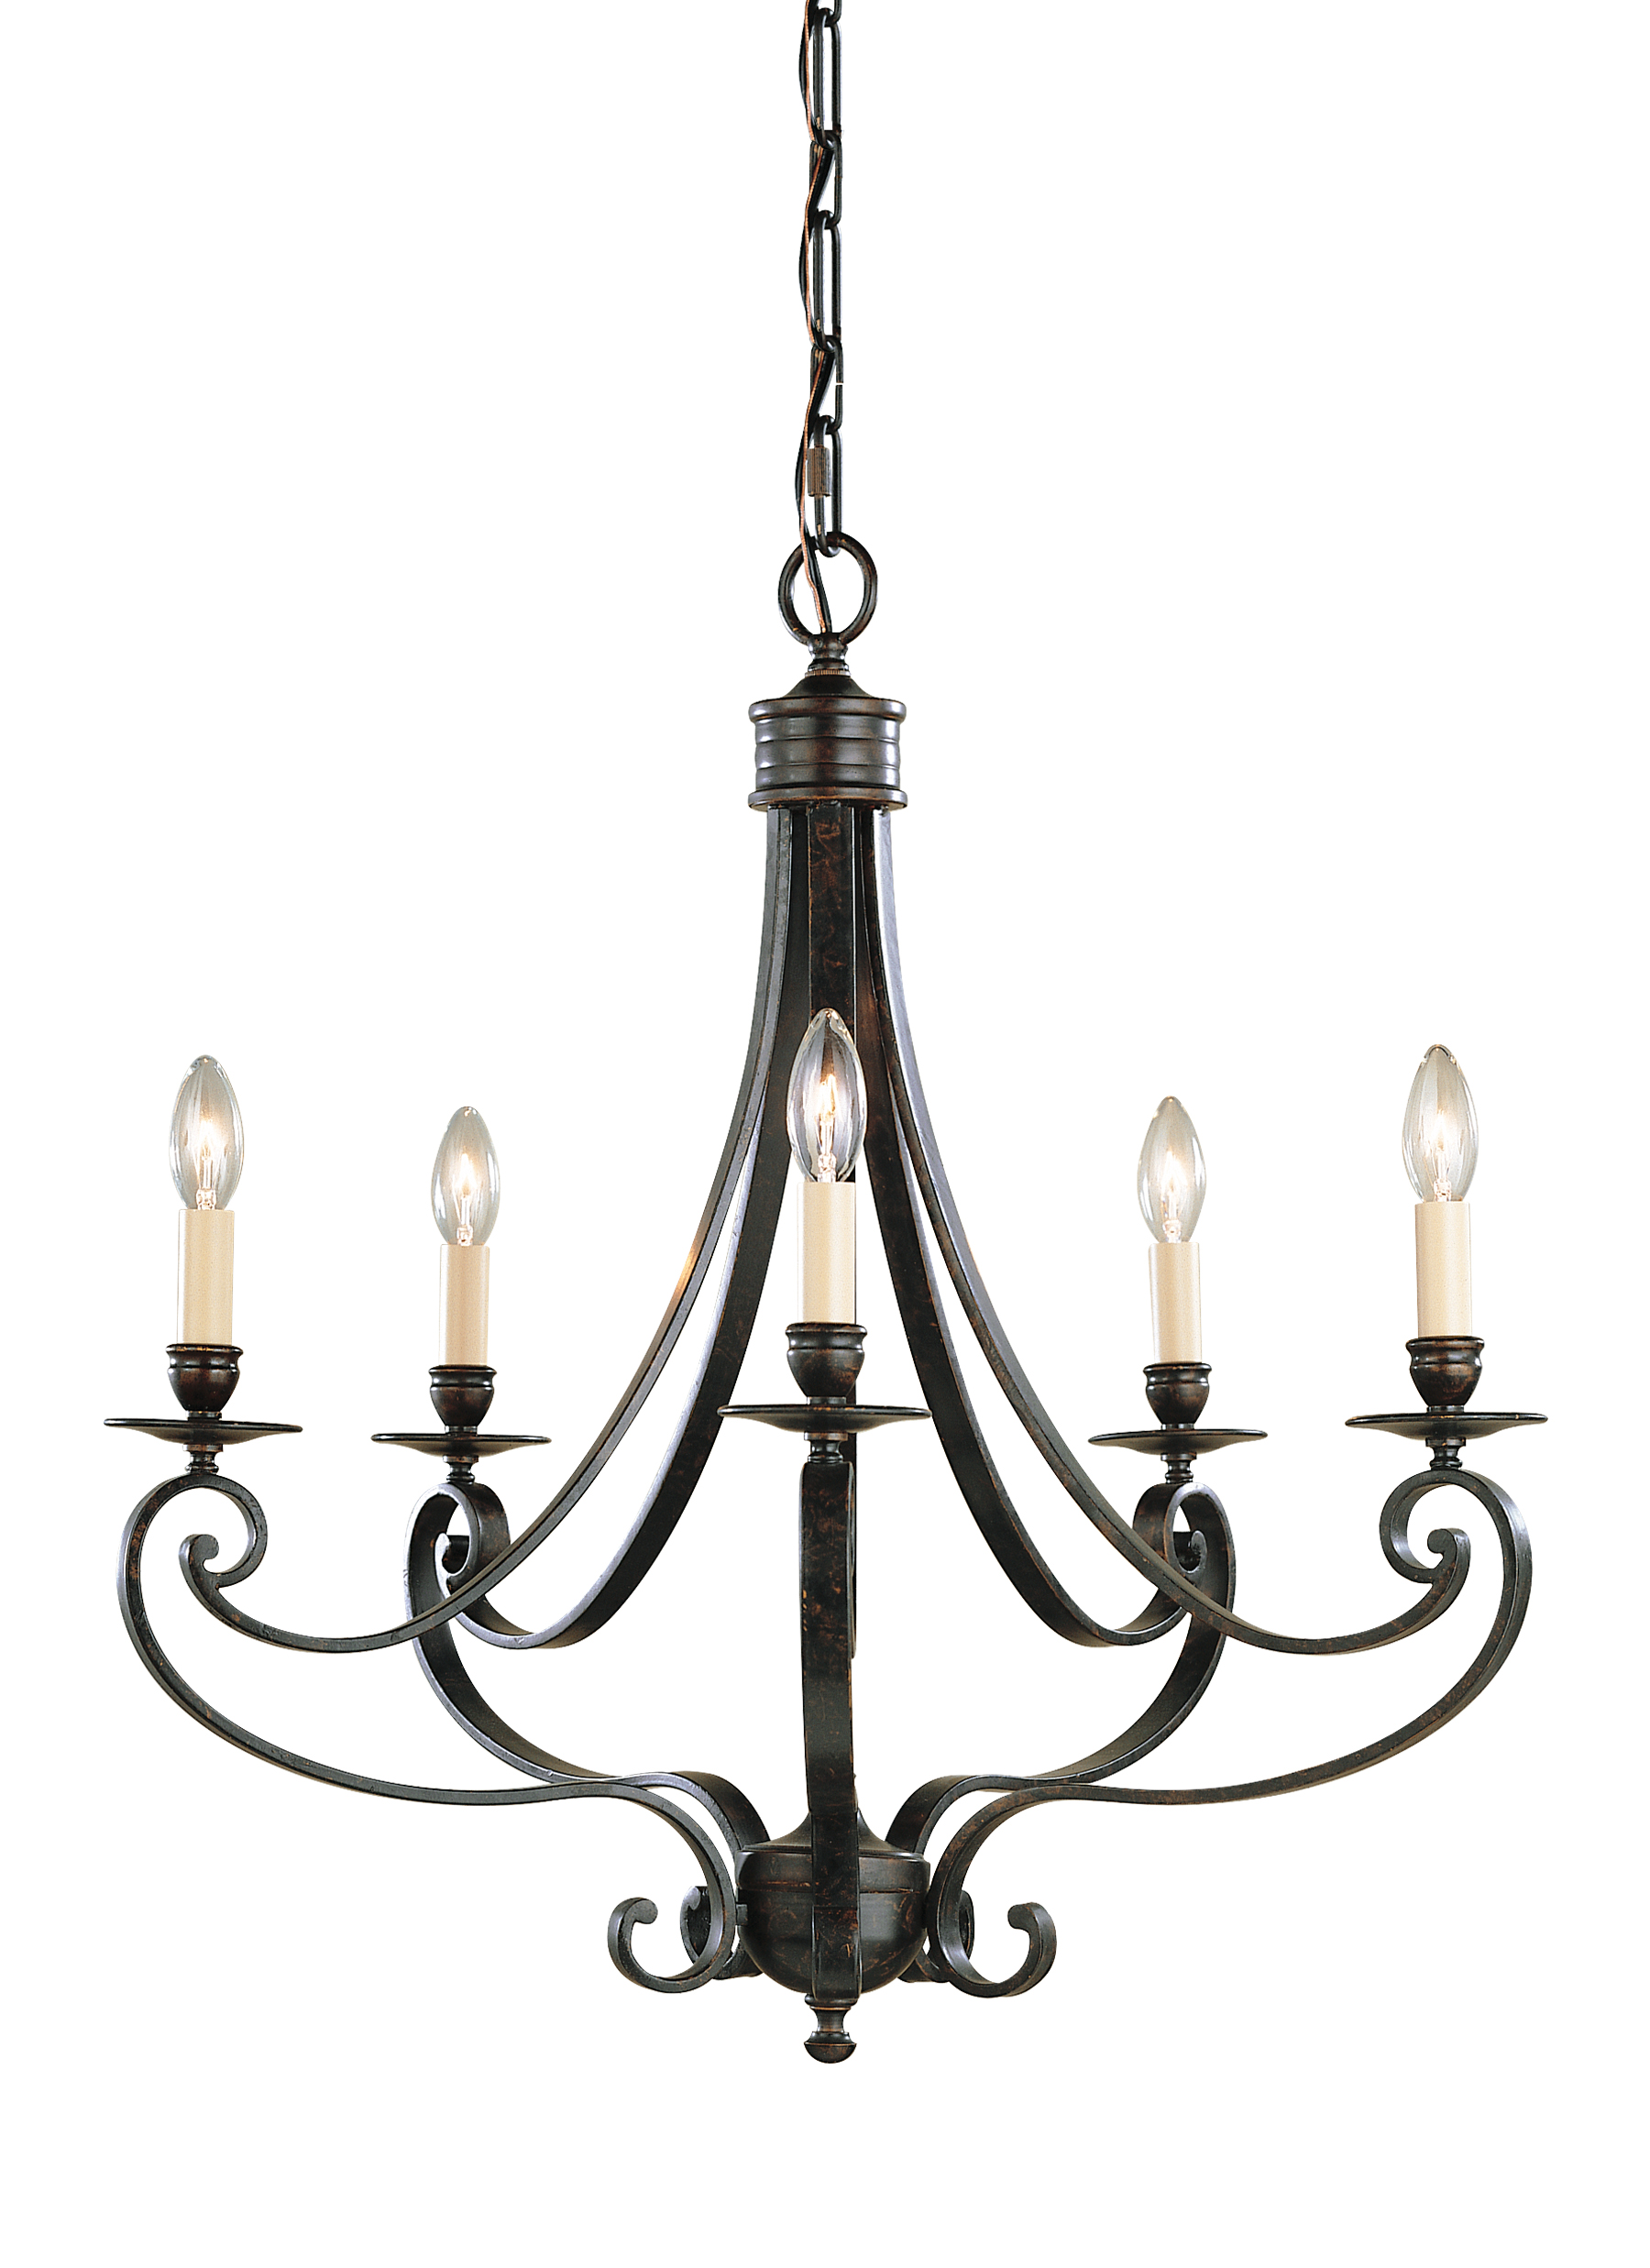 lights chandeliers metal bronze appealing crystal incandescent bulb material style designs antique glass chandelier small traditional finish and